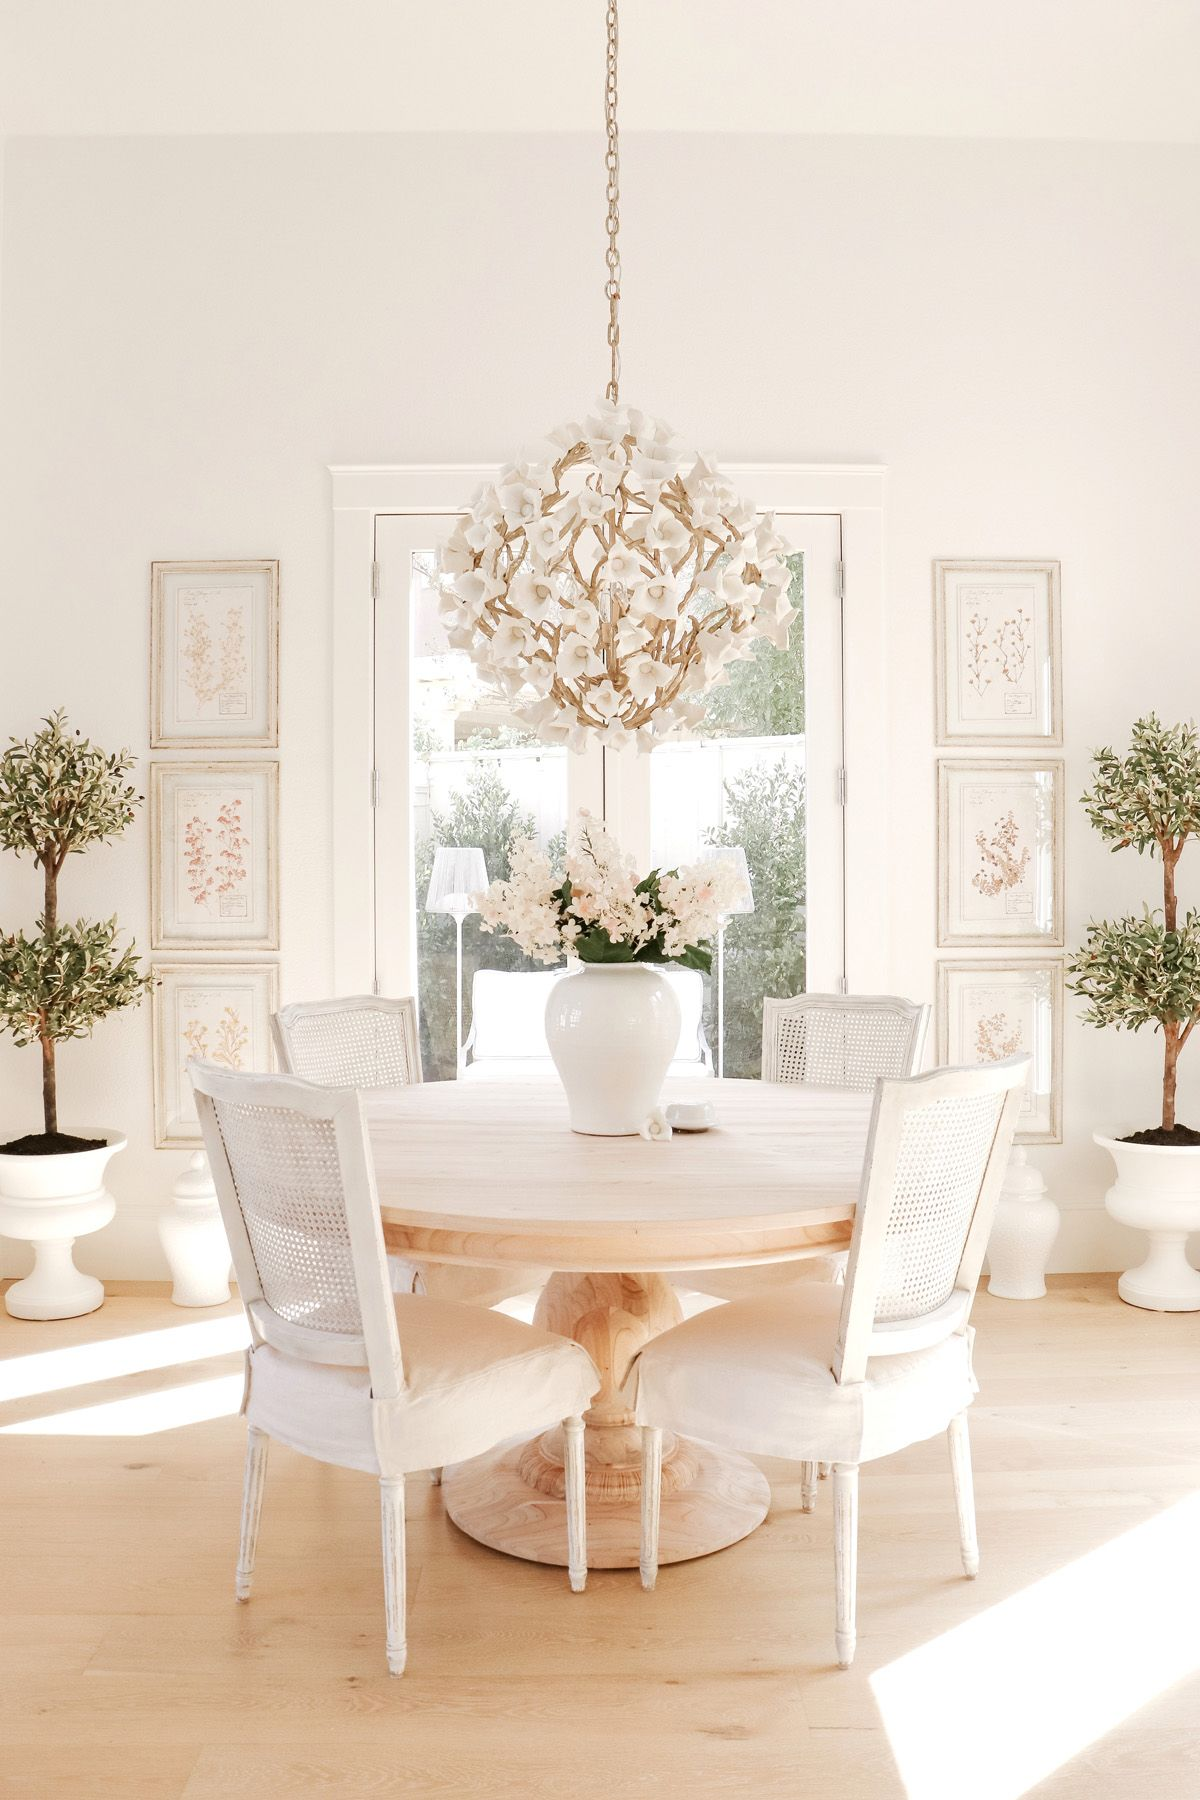 New French Inspired Pedestal Dining Table Kristywicks Com White Dining Room Modern Dining Room Dining Room Inspiration